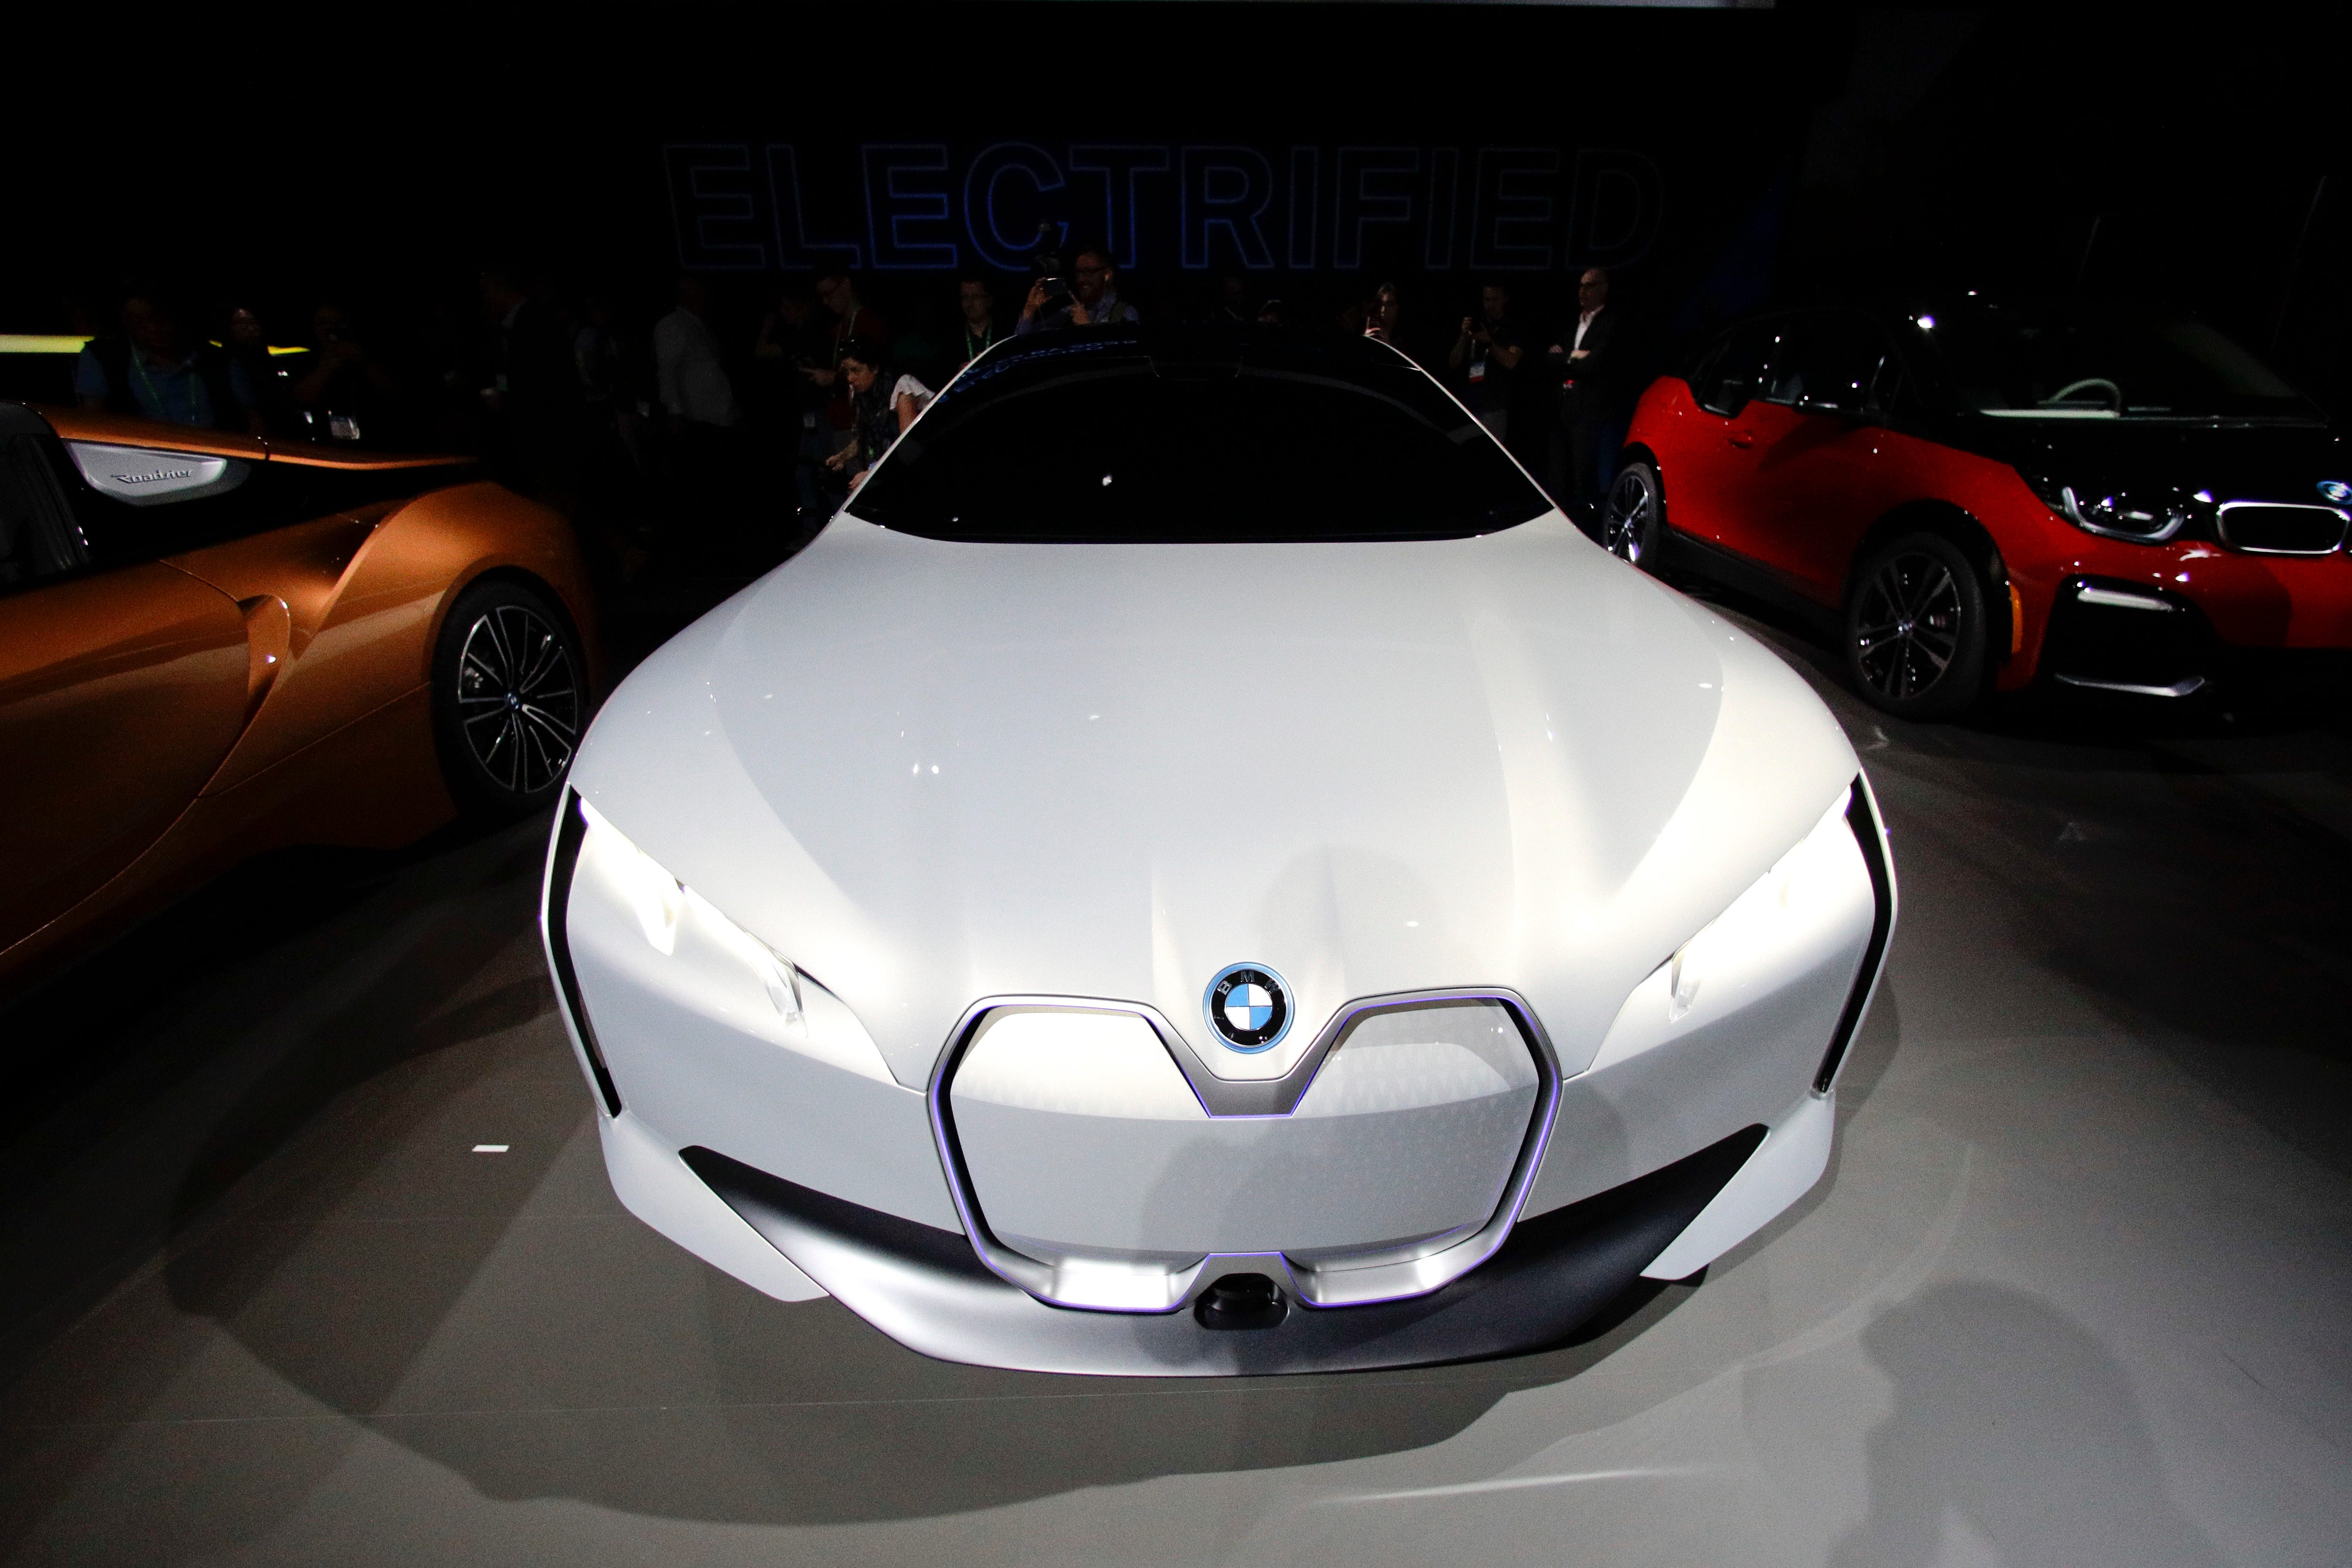 The BMW i Vision Dynamics electric vehicle is showcased